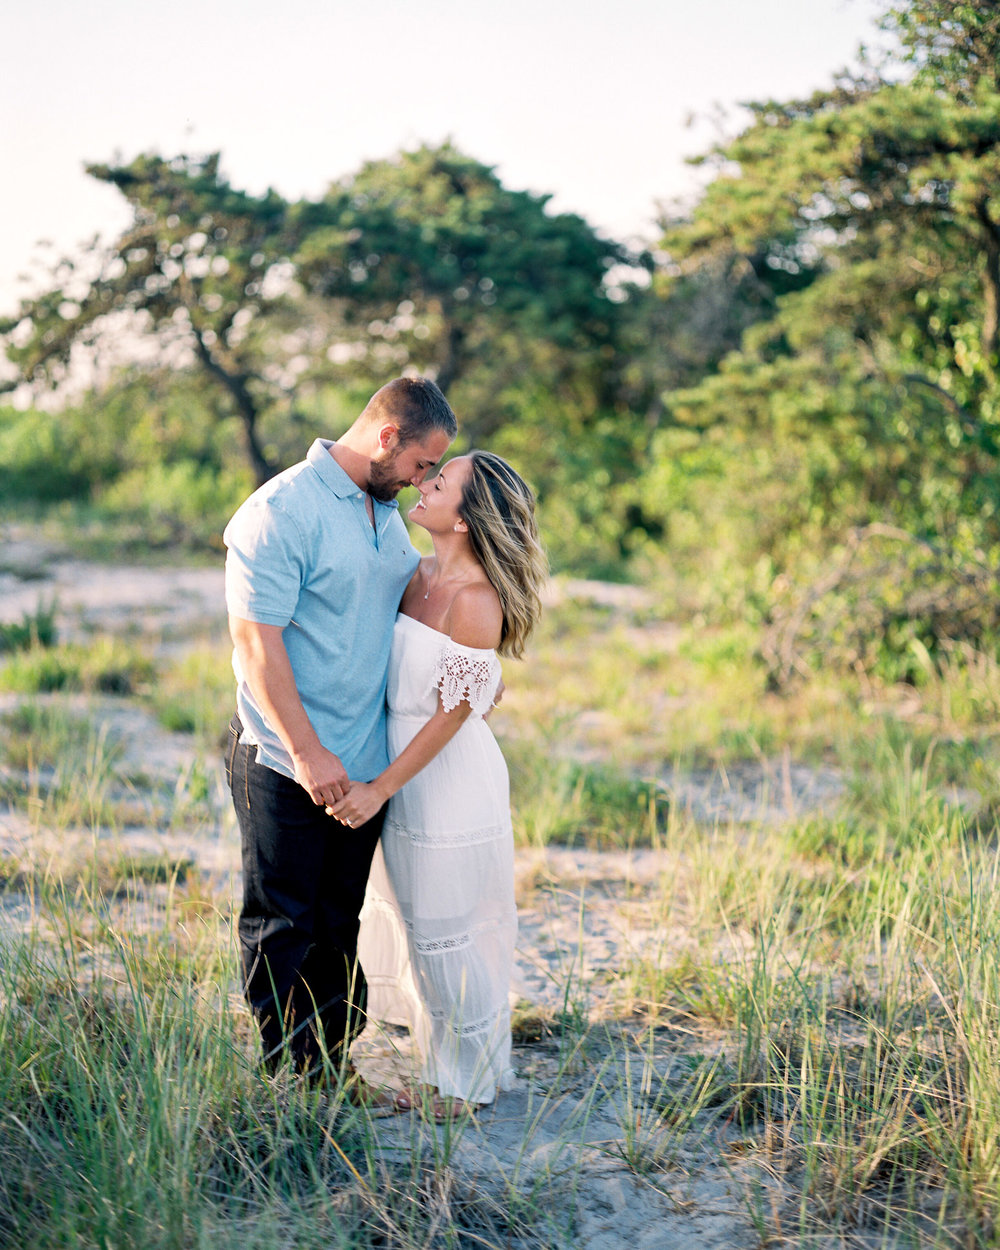 17.6.29 Chris and Kelly Fire Island Lighthouse Engagement-14.jpg